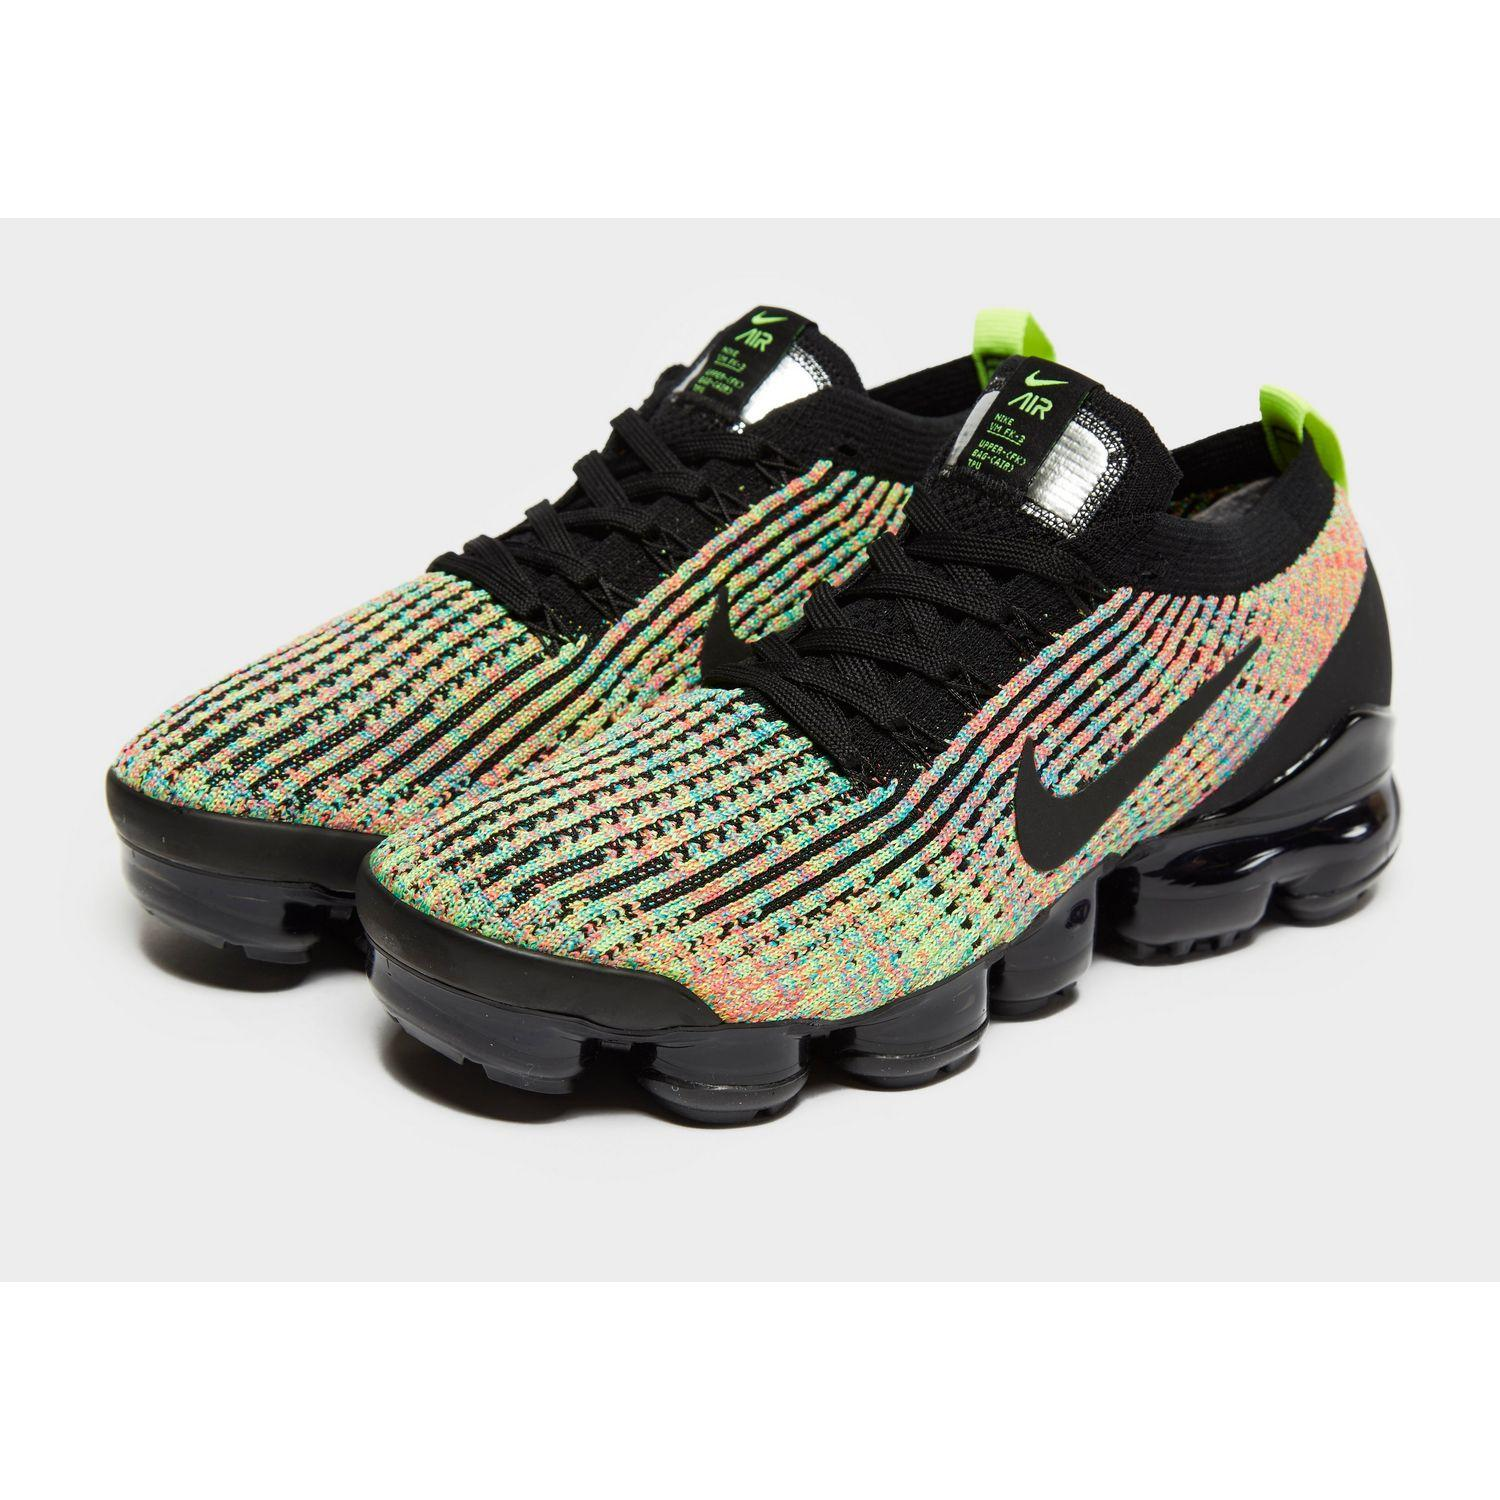 catch where to buy exquisite design Air Vapormax Flyknit 3 W